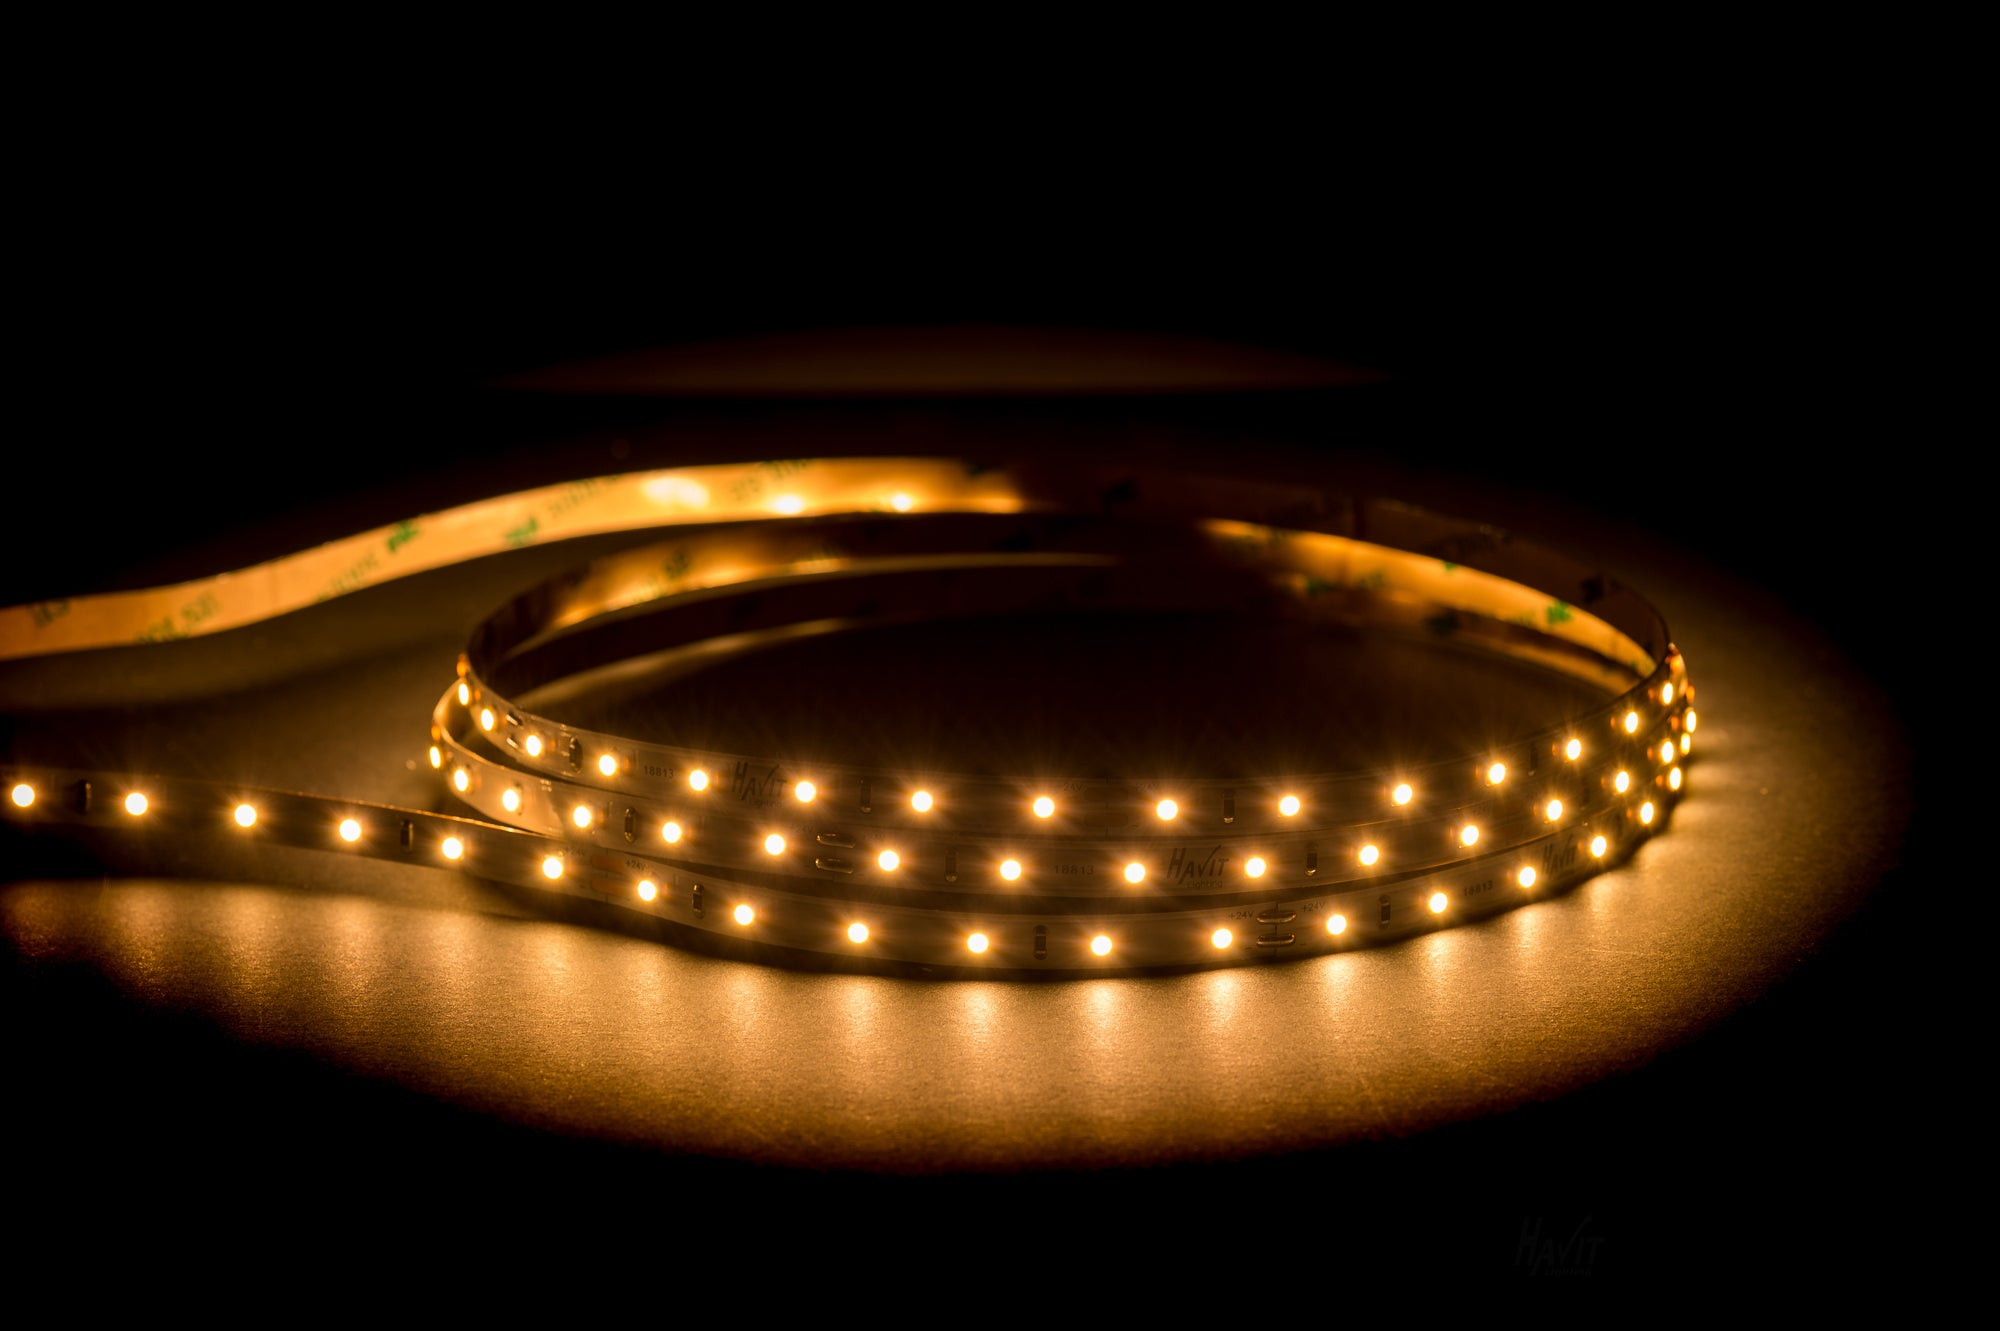 HV9722-IP20-64-3K - 4.8w 24v DC IP20 LED Strip 3000k